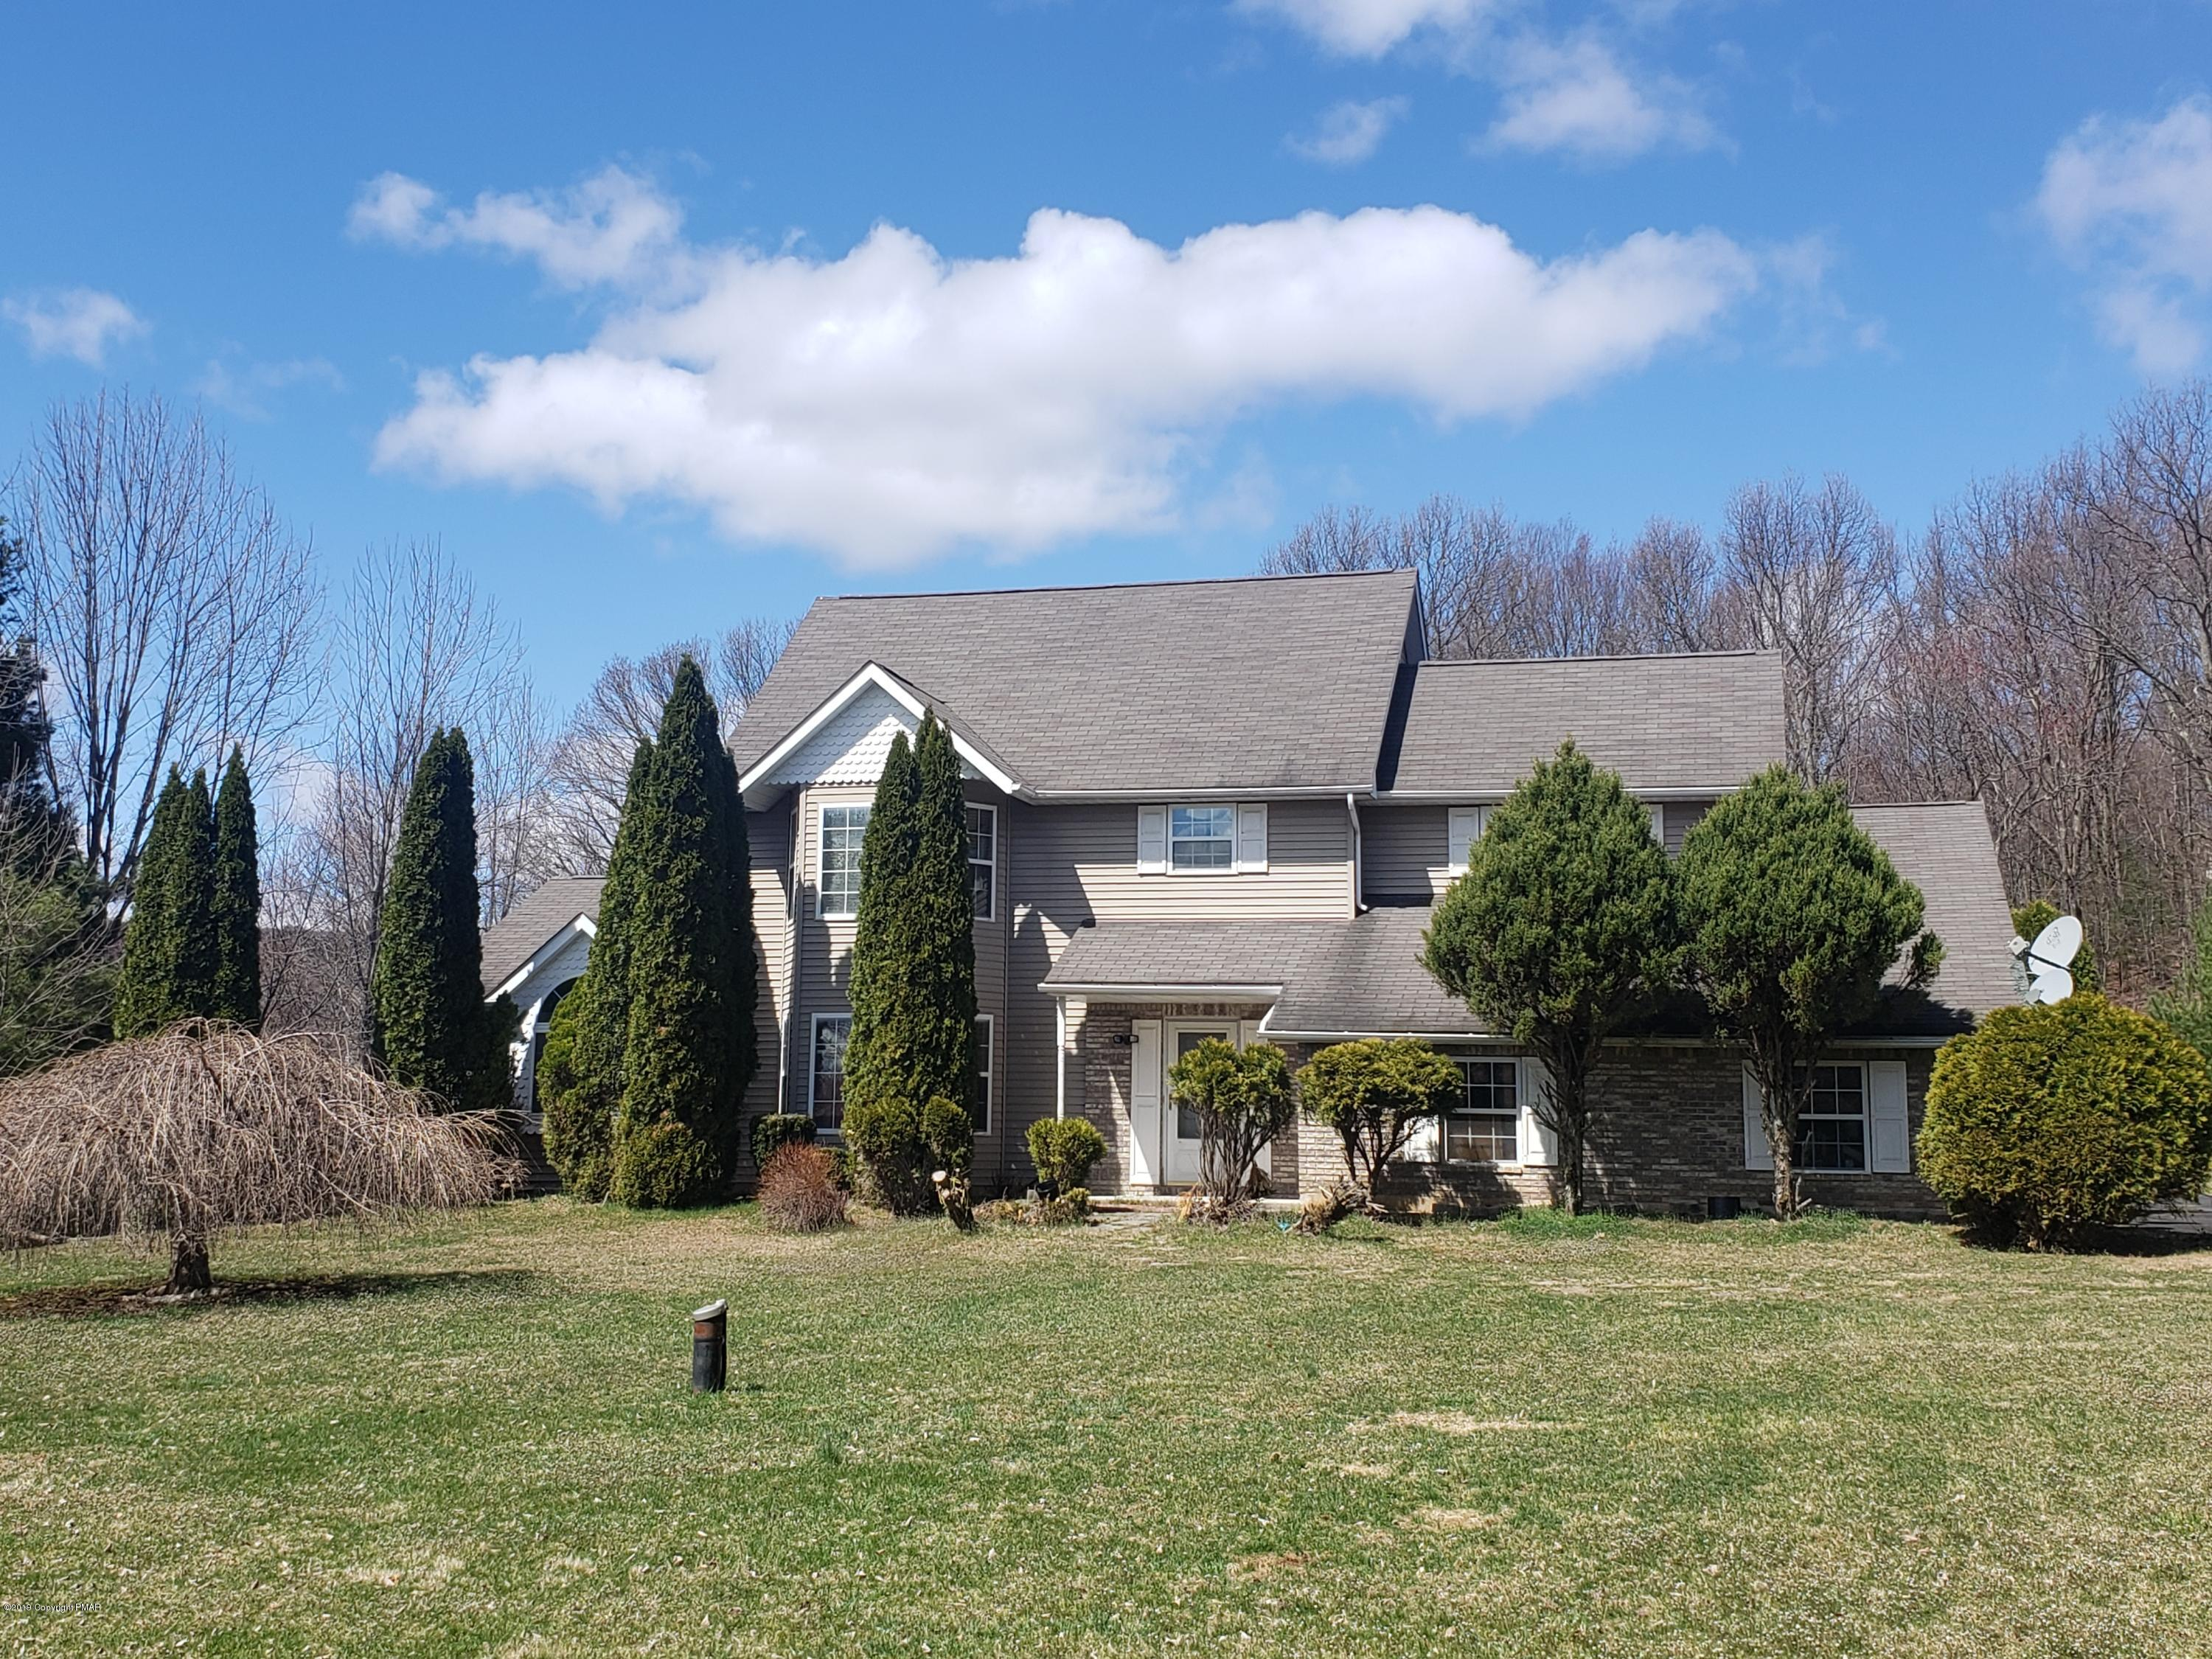 2225 Mountain Laurel Dr, Effort, PA 18330